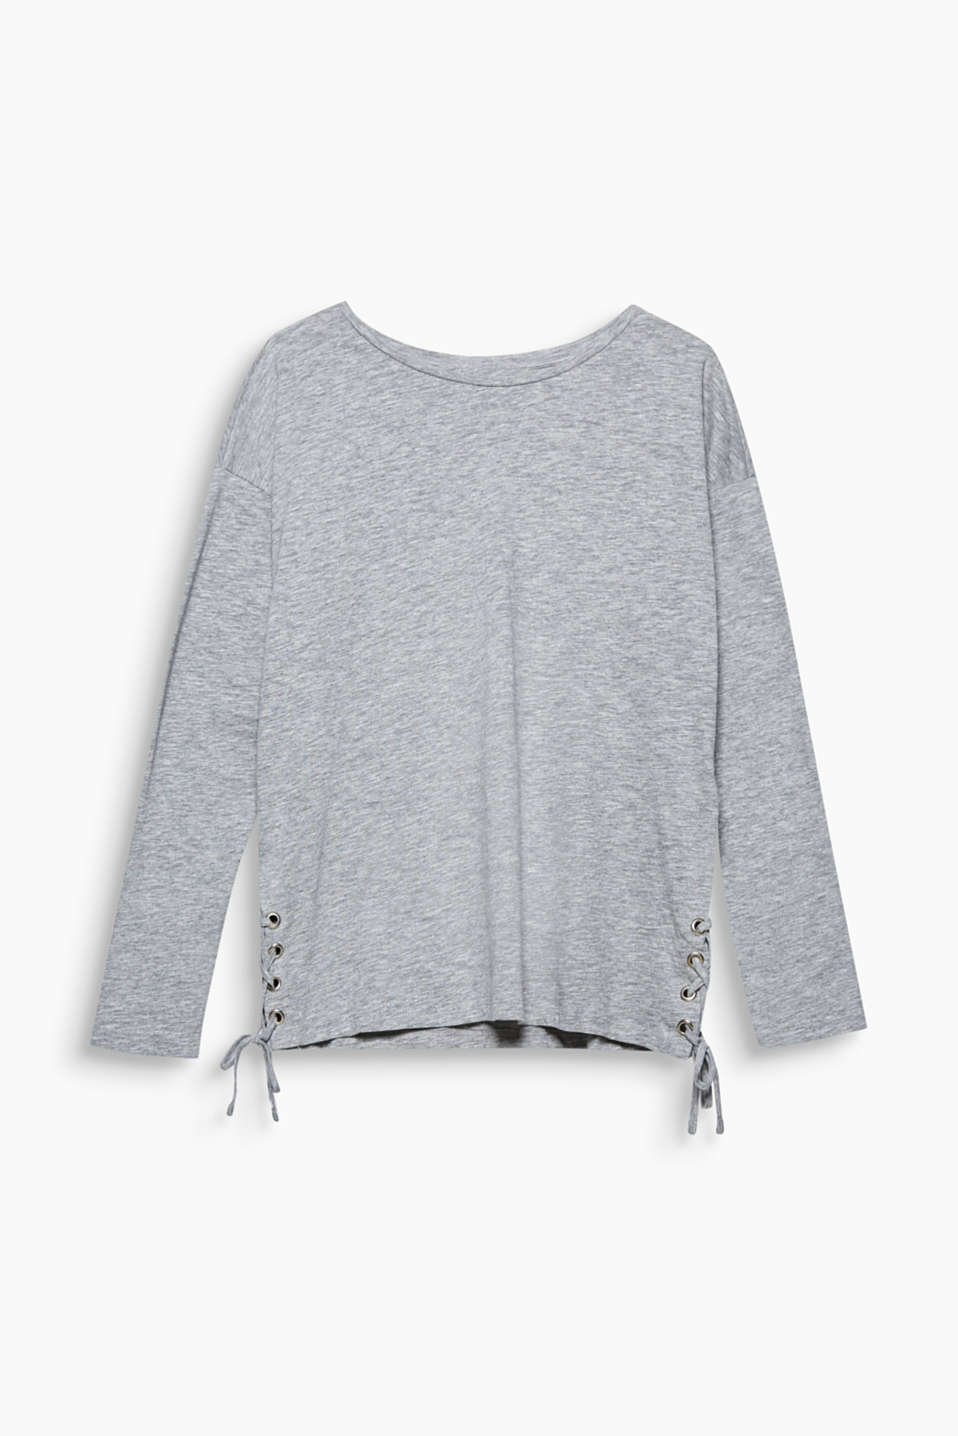 This casual long sleeve top in soft melange jersey features eye-catching lacing effects on the sides.